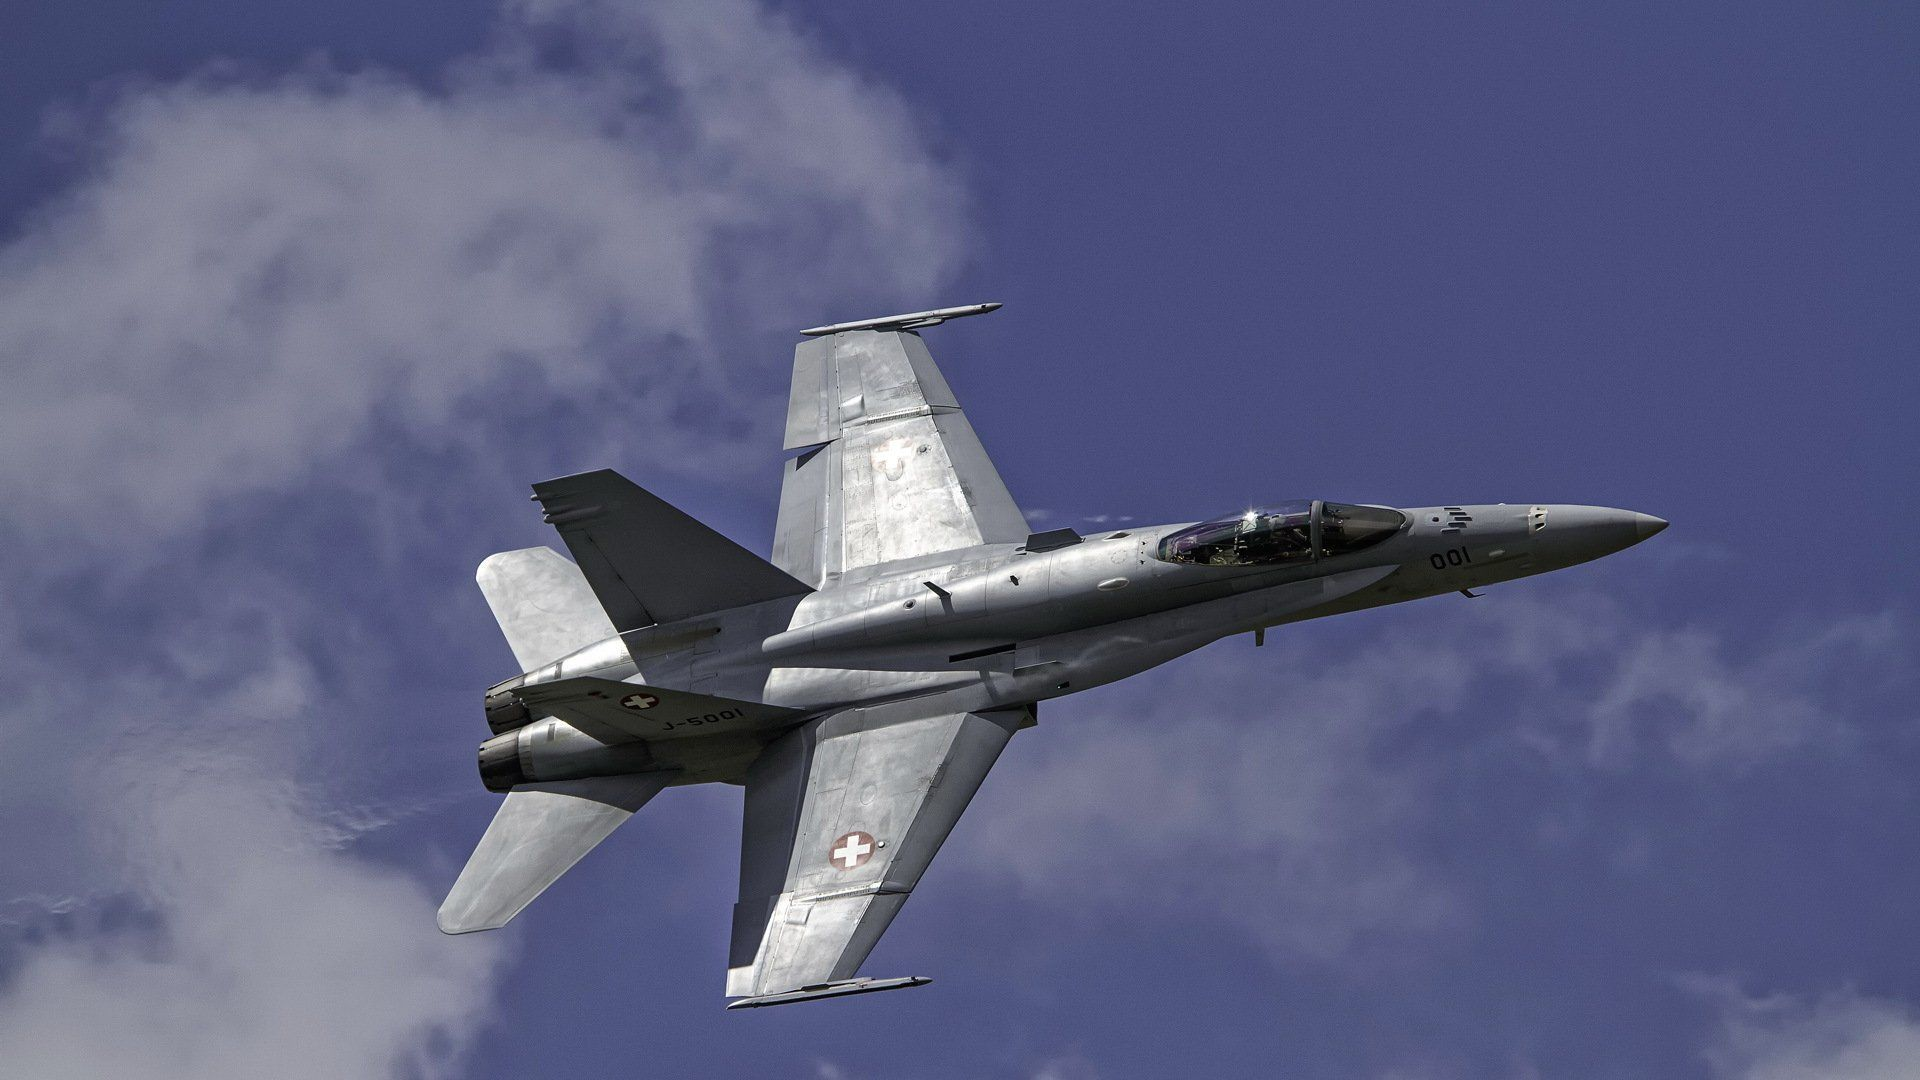 f18 swiss HD wallpaper for computer or android